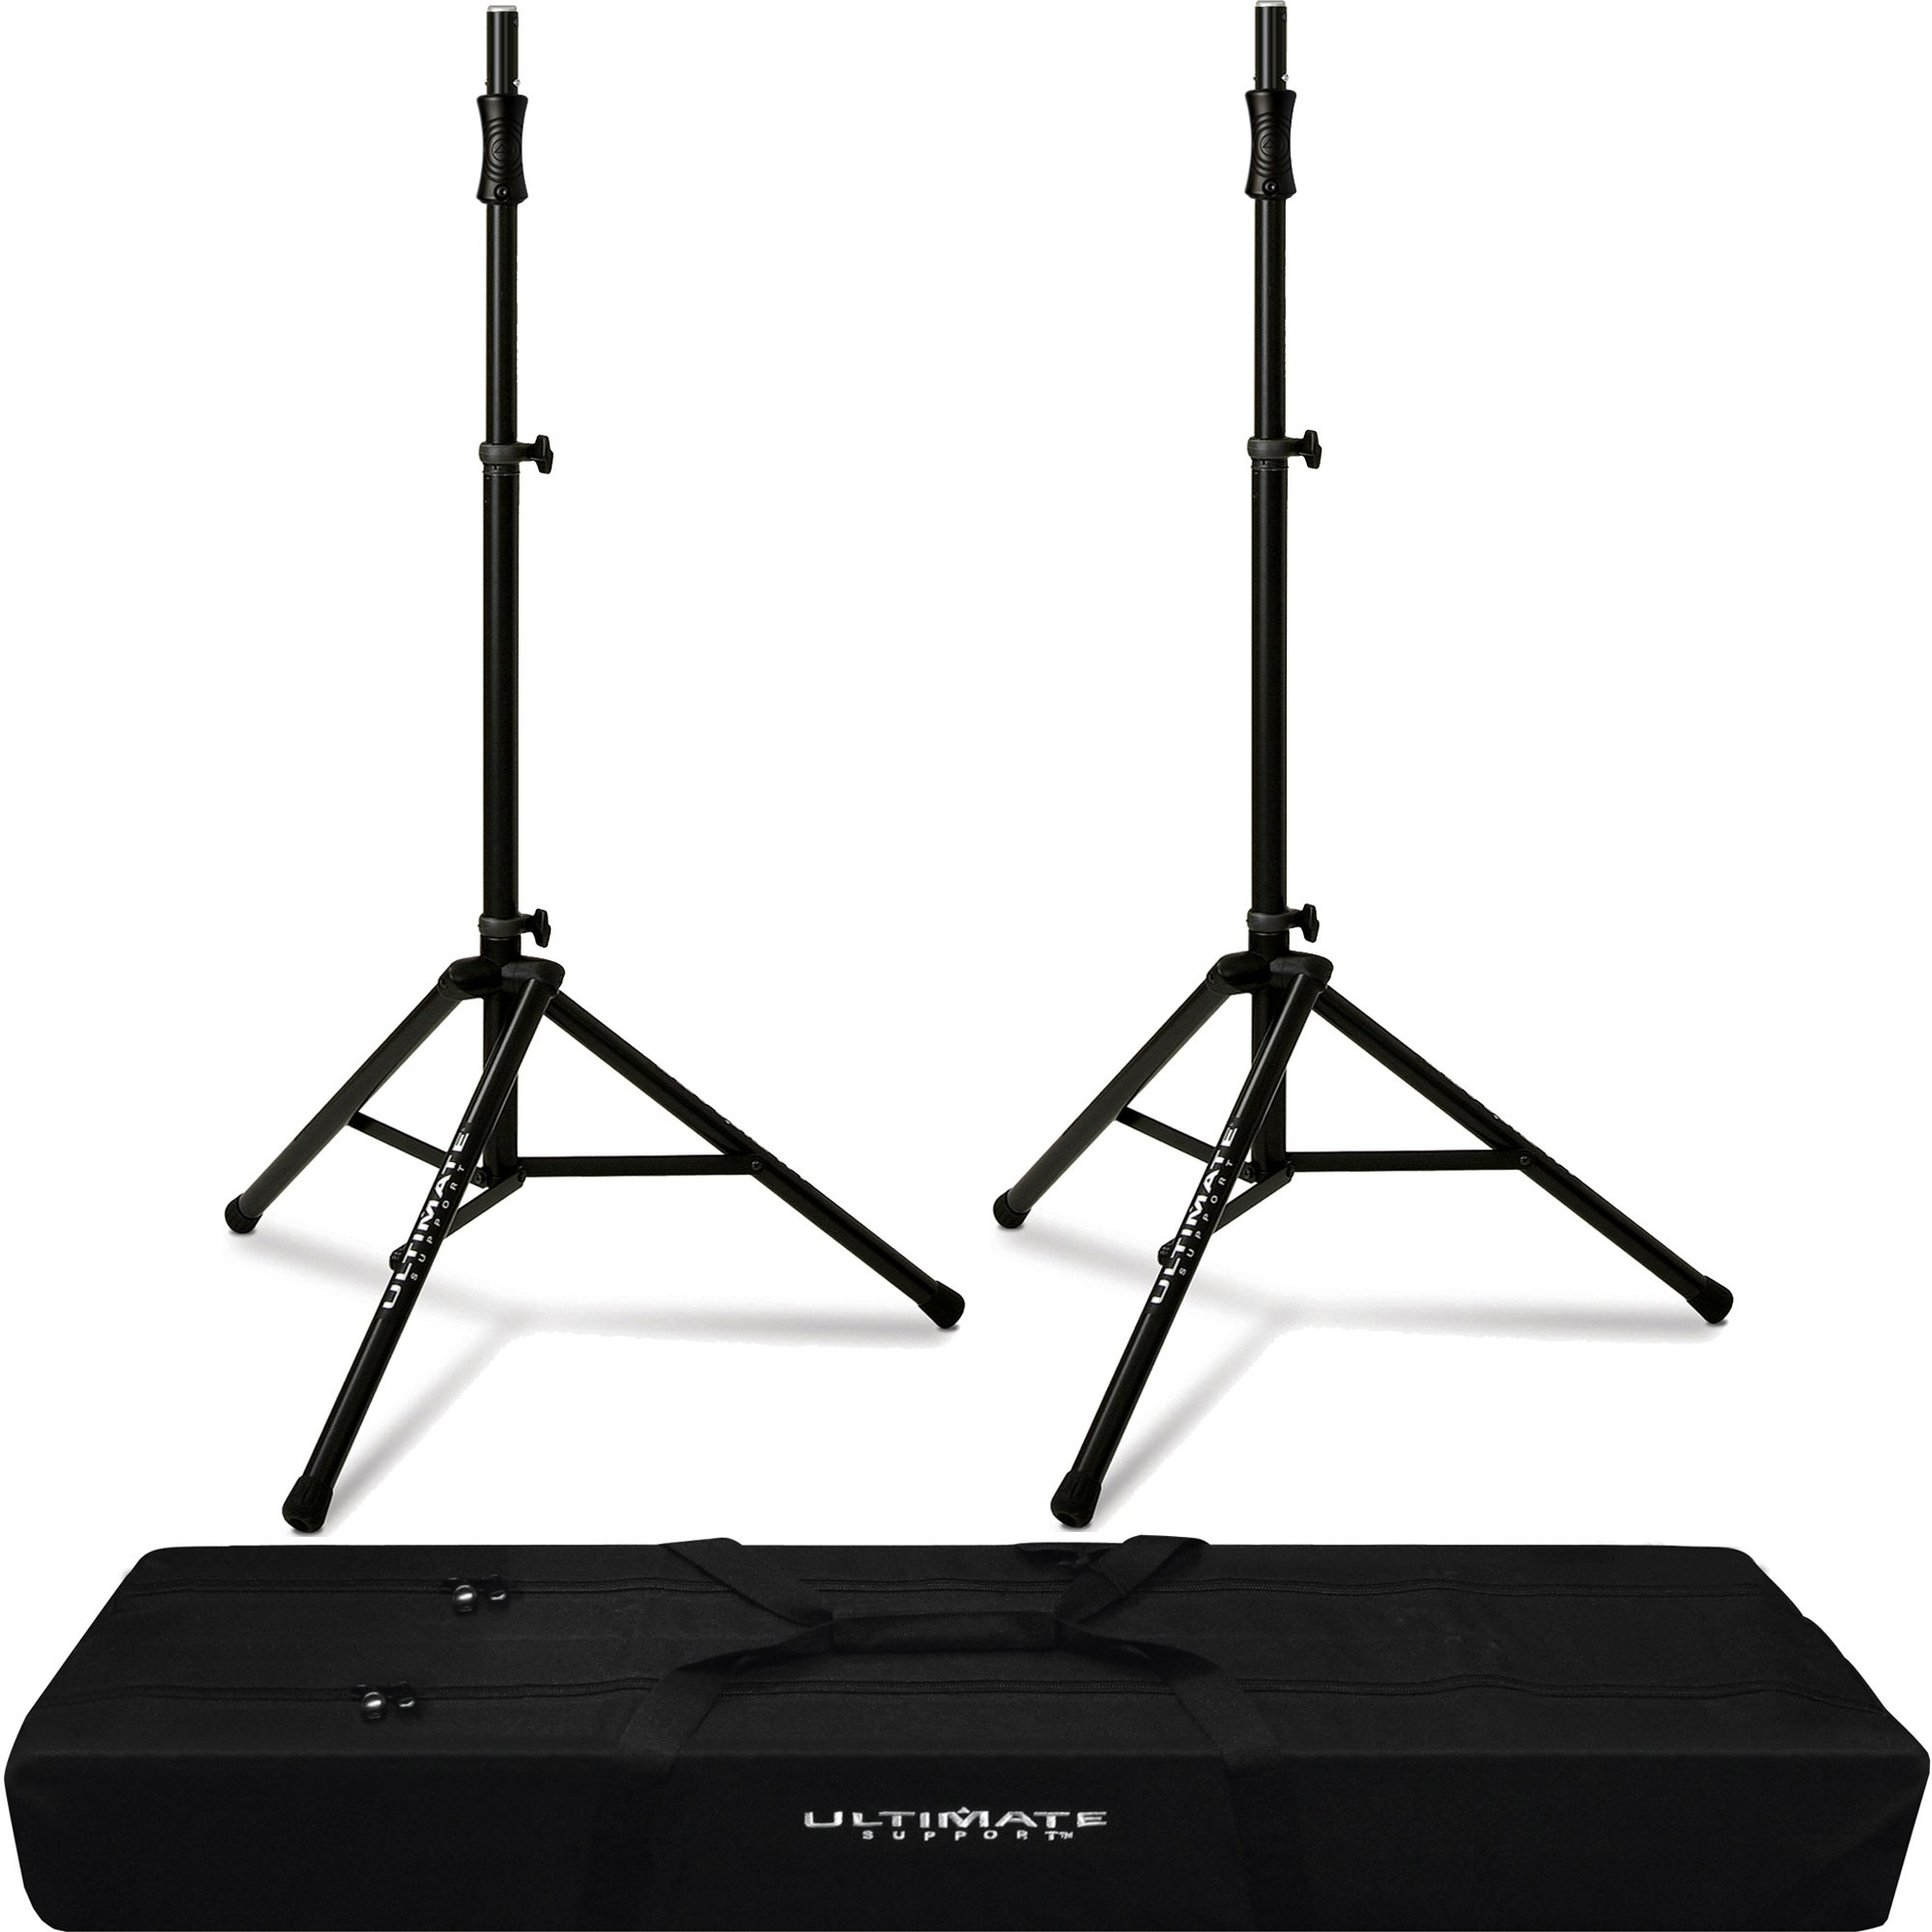 2x TS-100B Air Powered Speaker Stand & BAG-90D Padded Dual Tripod Tote Bag